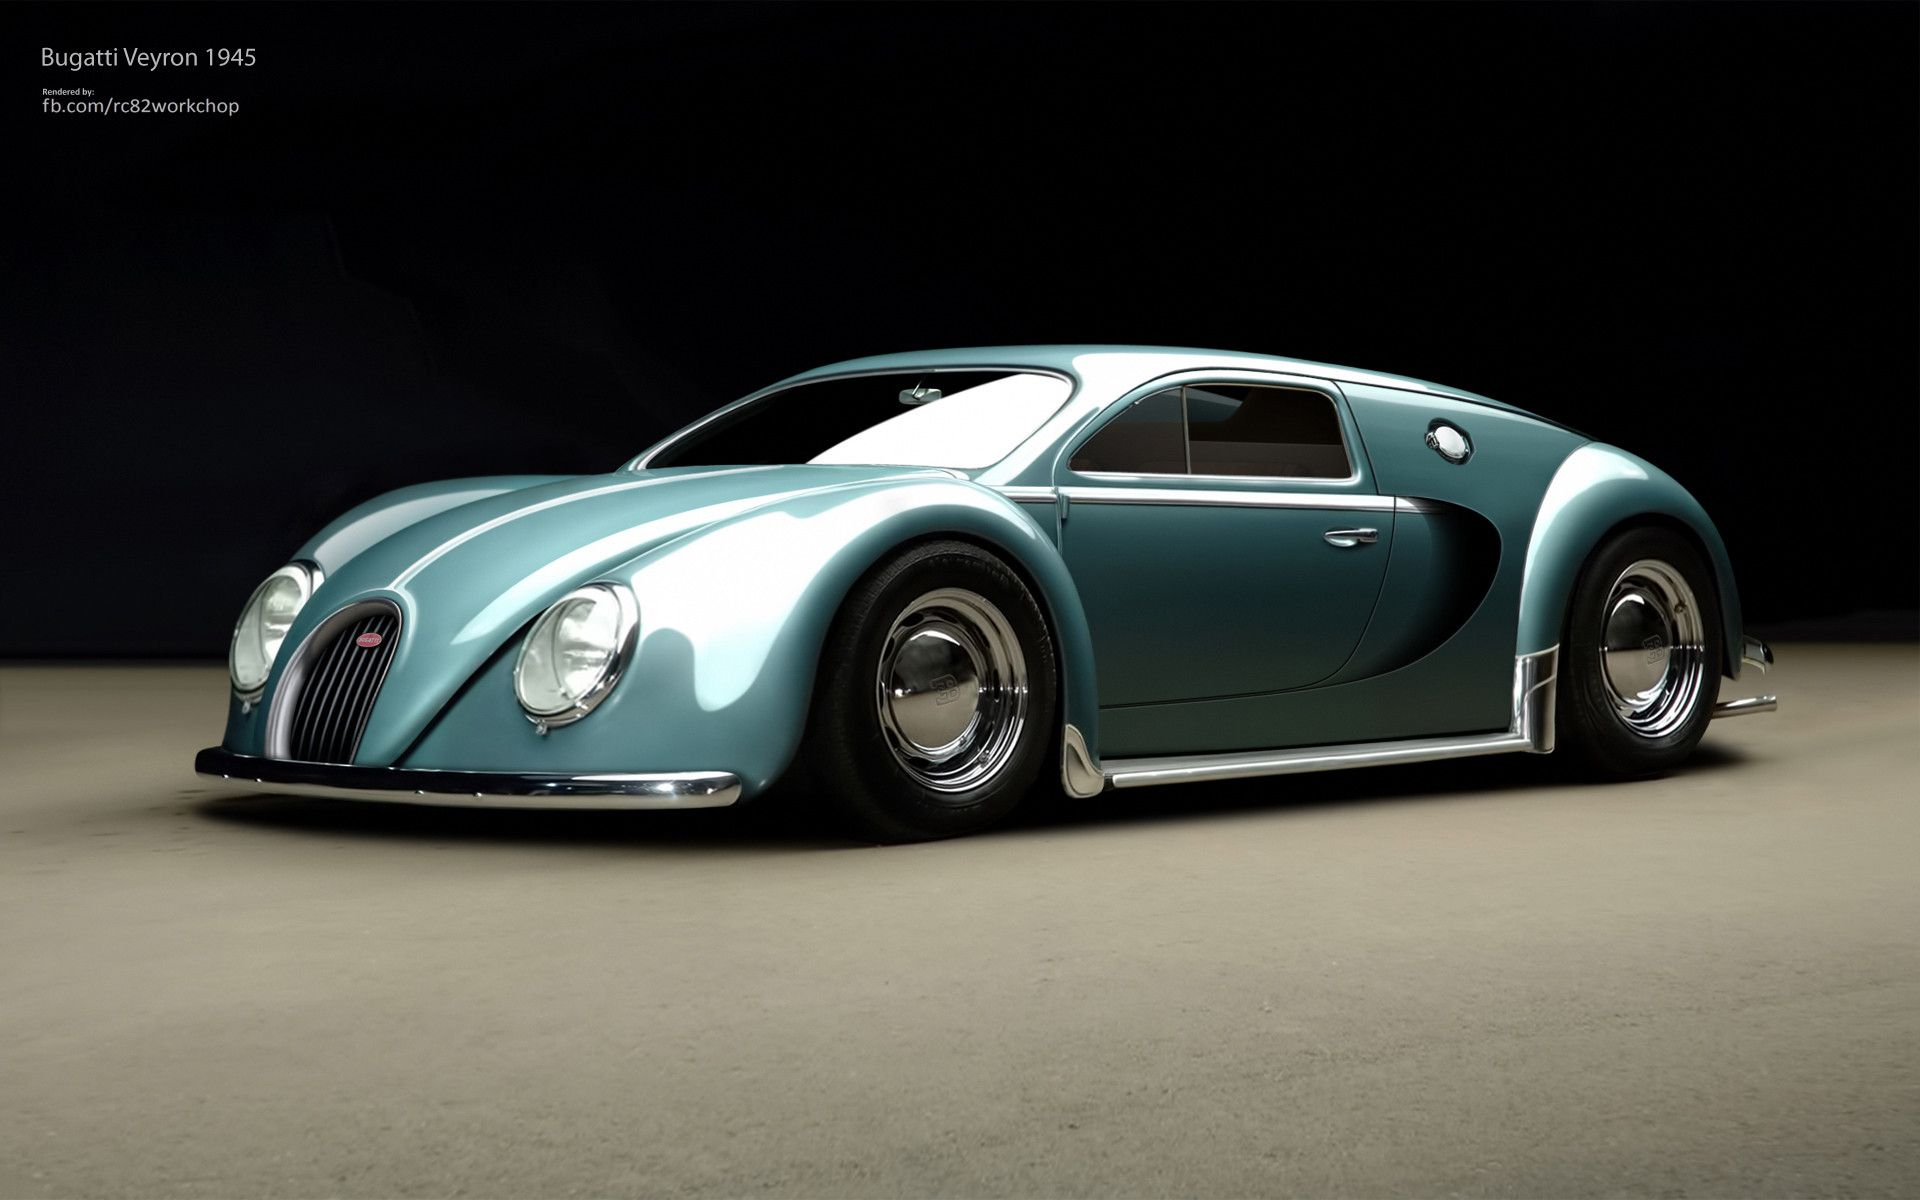 If The Bugatti Veyron Was Designed In 1945 Bugatti